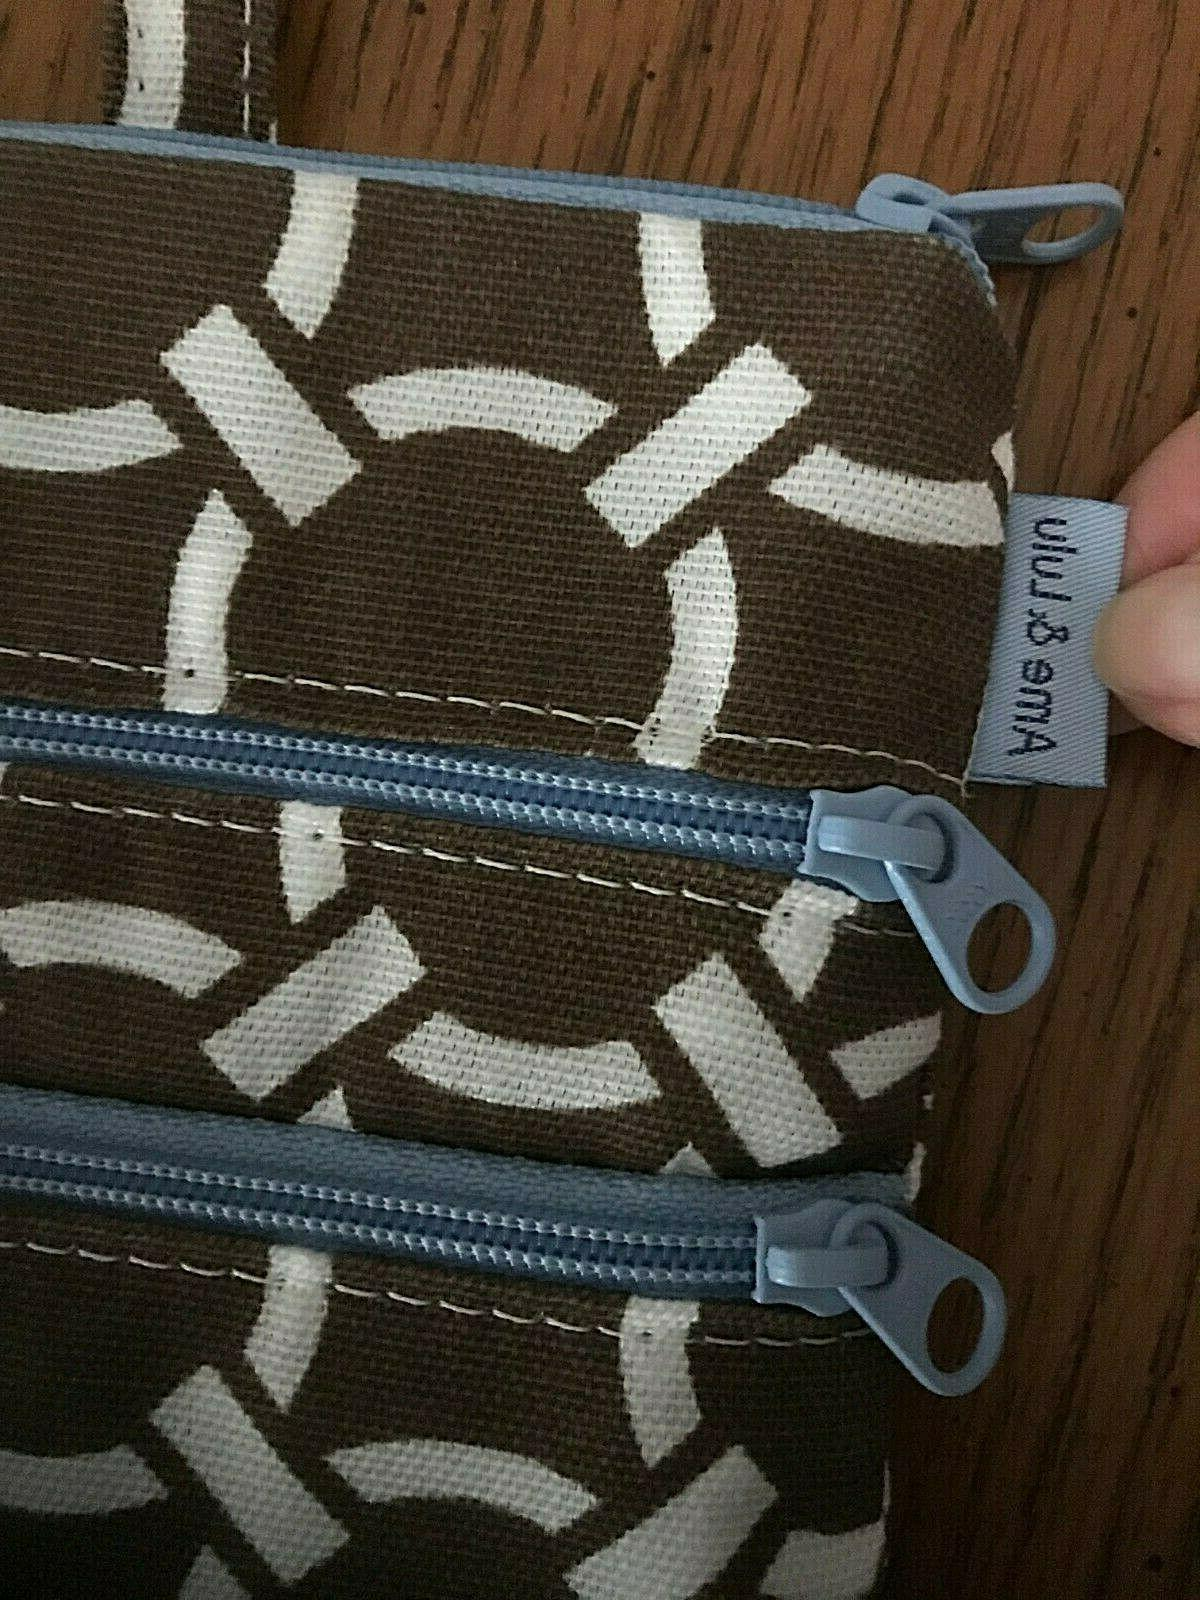 Ame 3 zip all pouch golf accessory clip onto $28